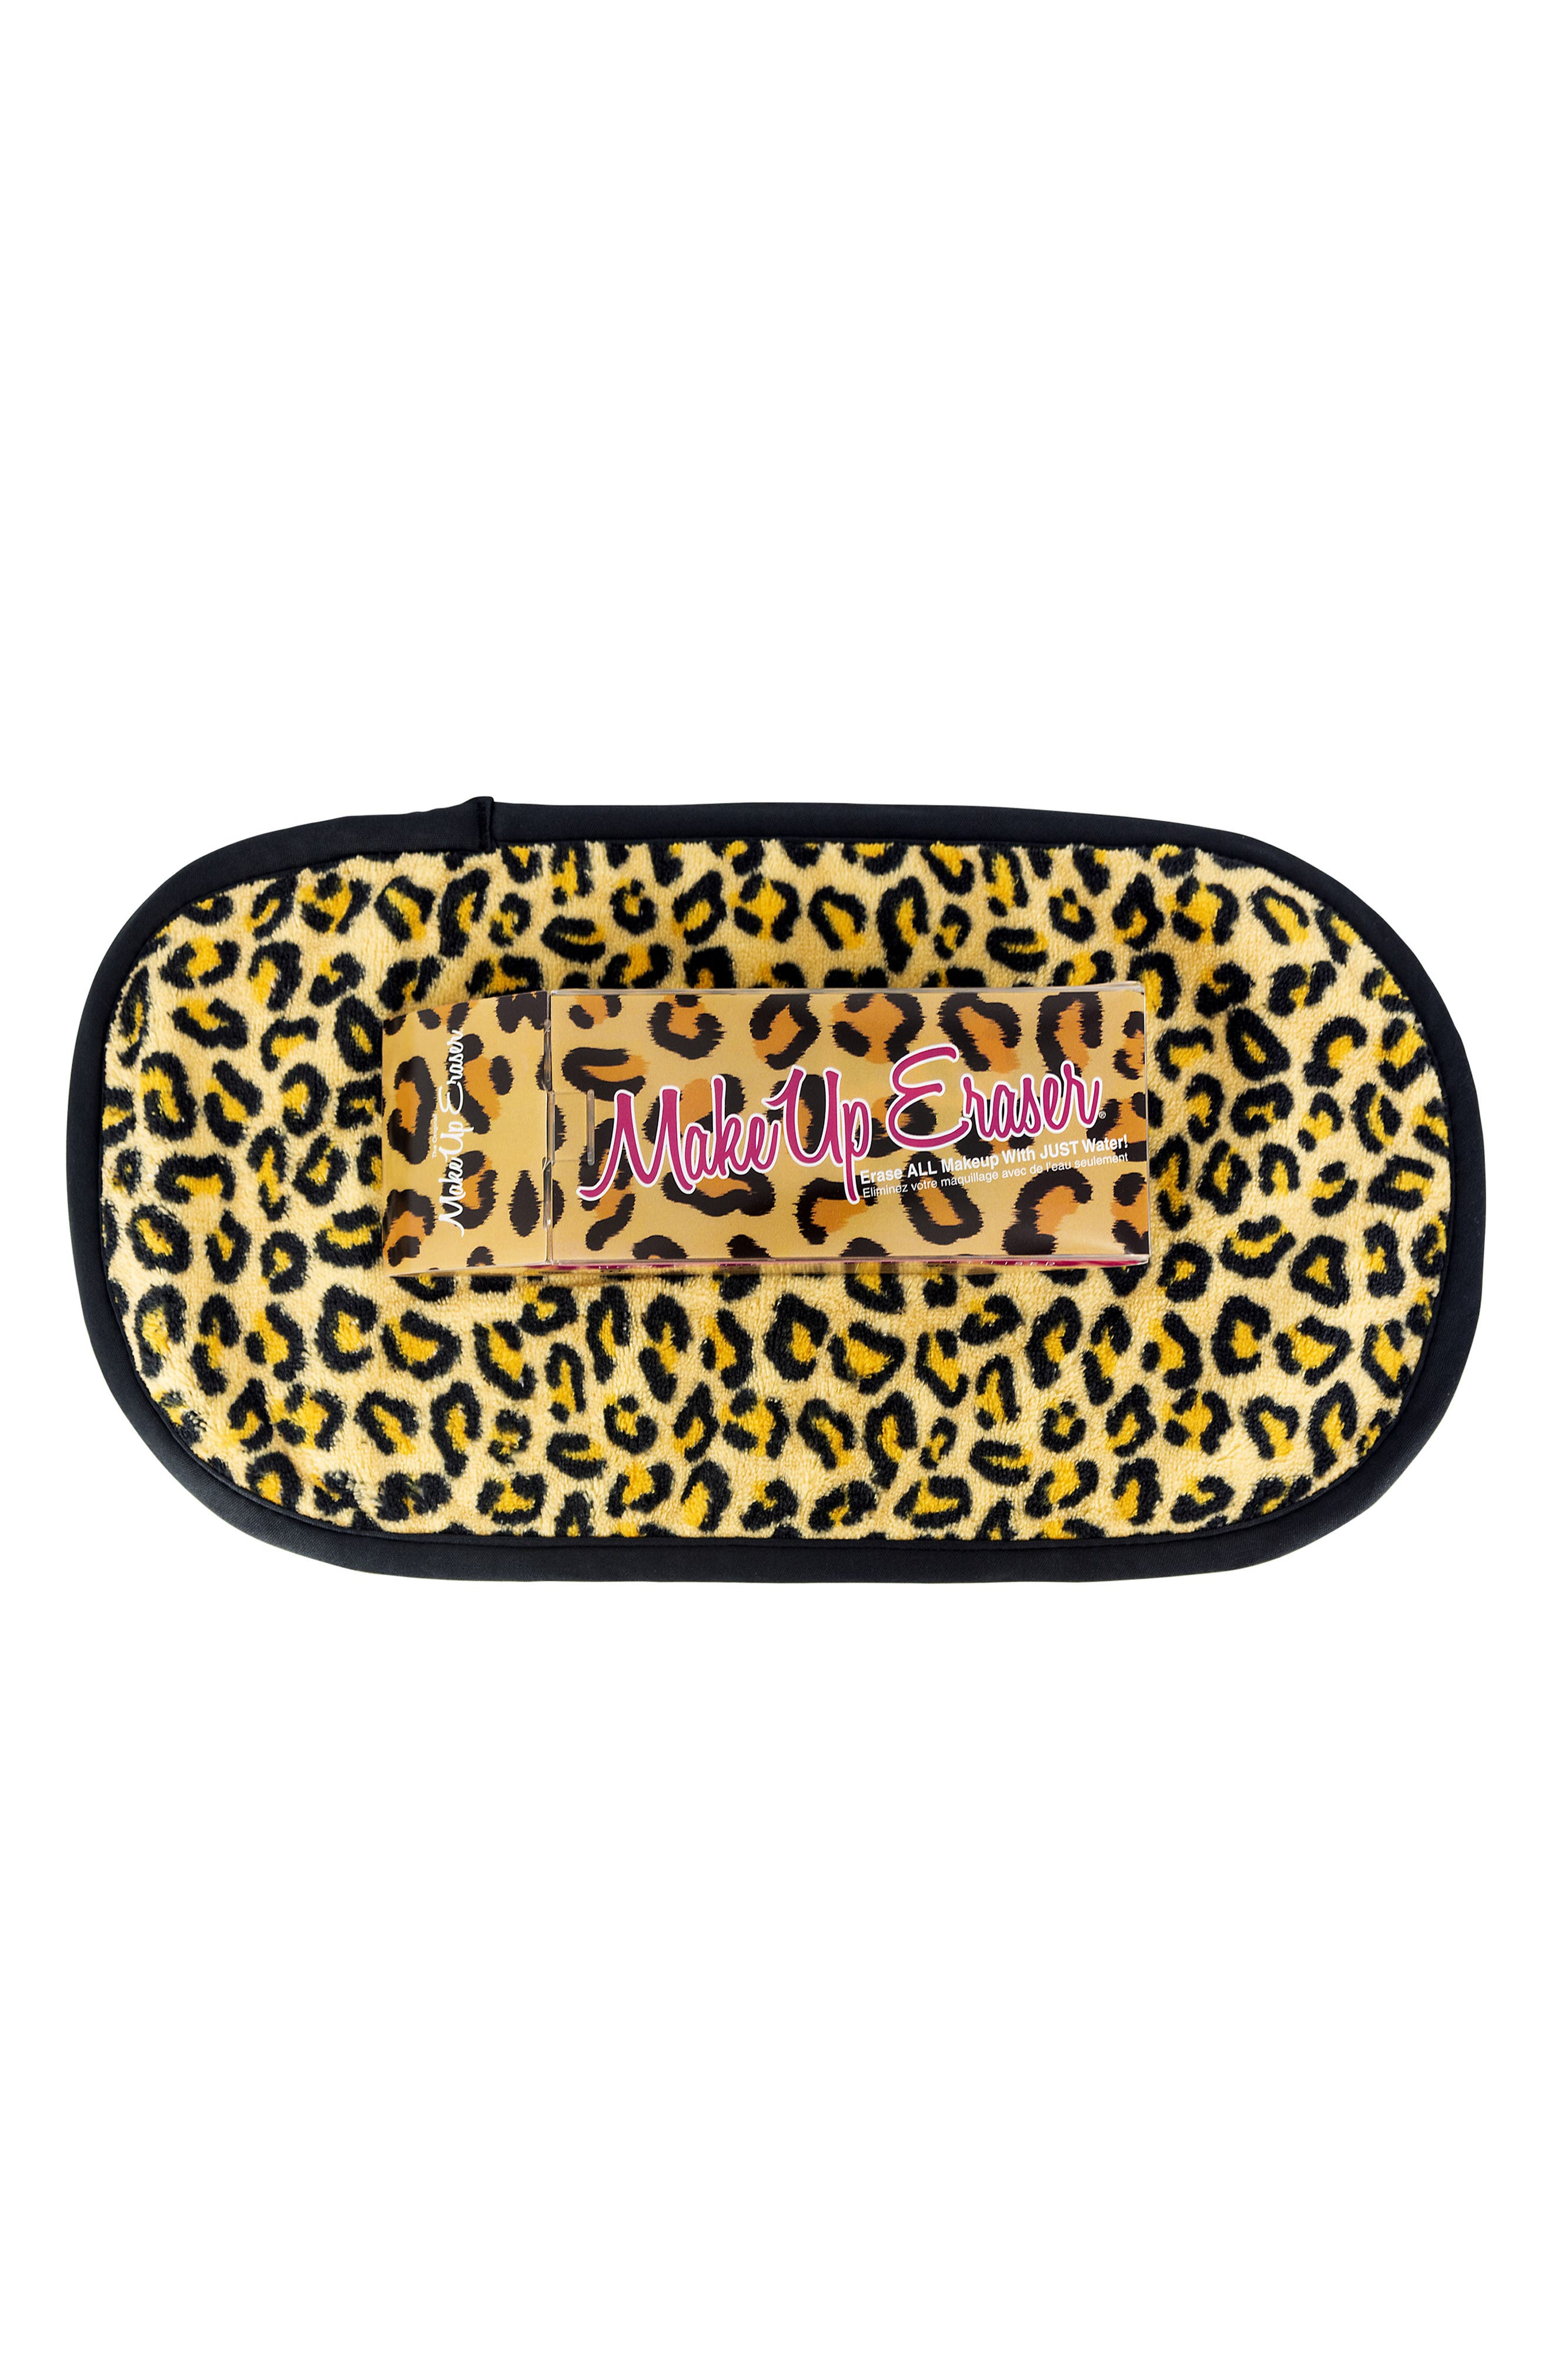 """Erase ALL makeup with JUST water! Including waterproof mascara, eyeliner, foundation, blush, and more! Reusable, machine washable, and lasts 3-5 years. Never buy harmful disposable wipes again. This full size cheetah MakeUp Eraser measures 15.5"""" x 7.5\\\"""